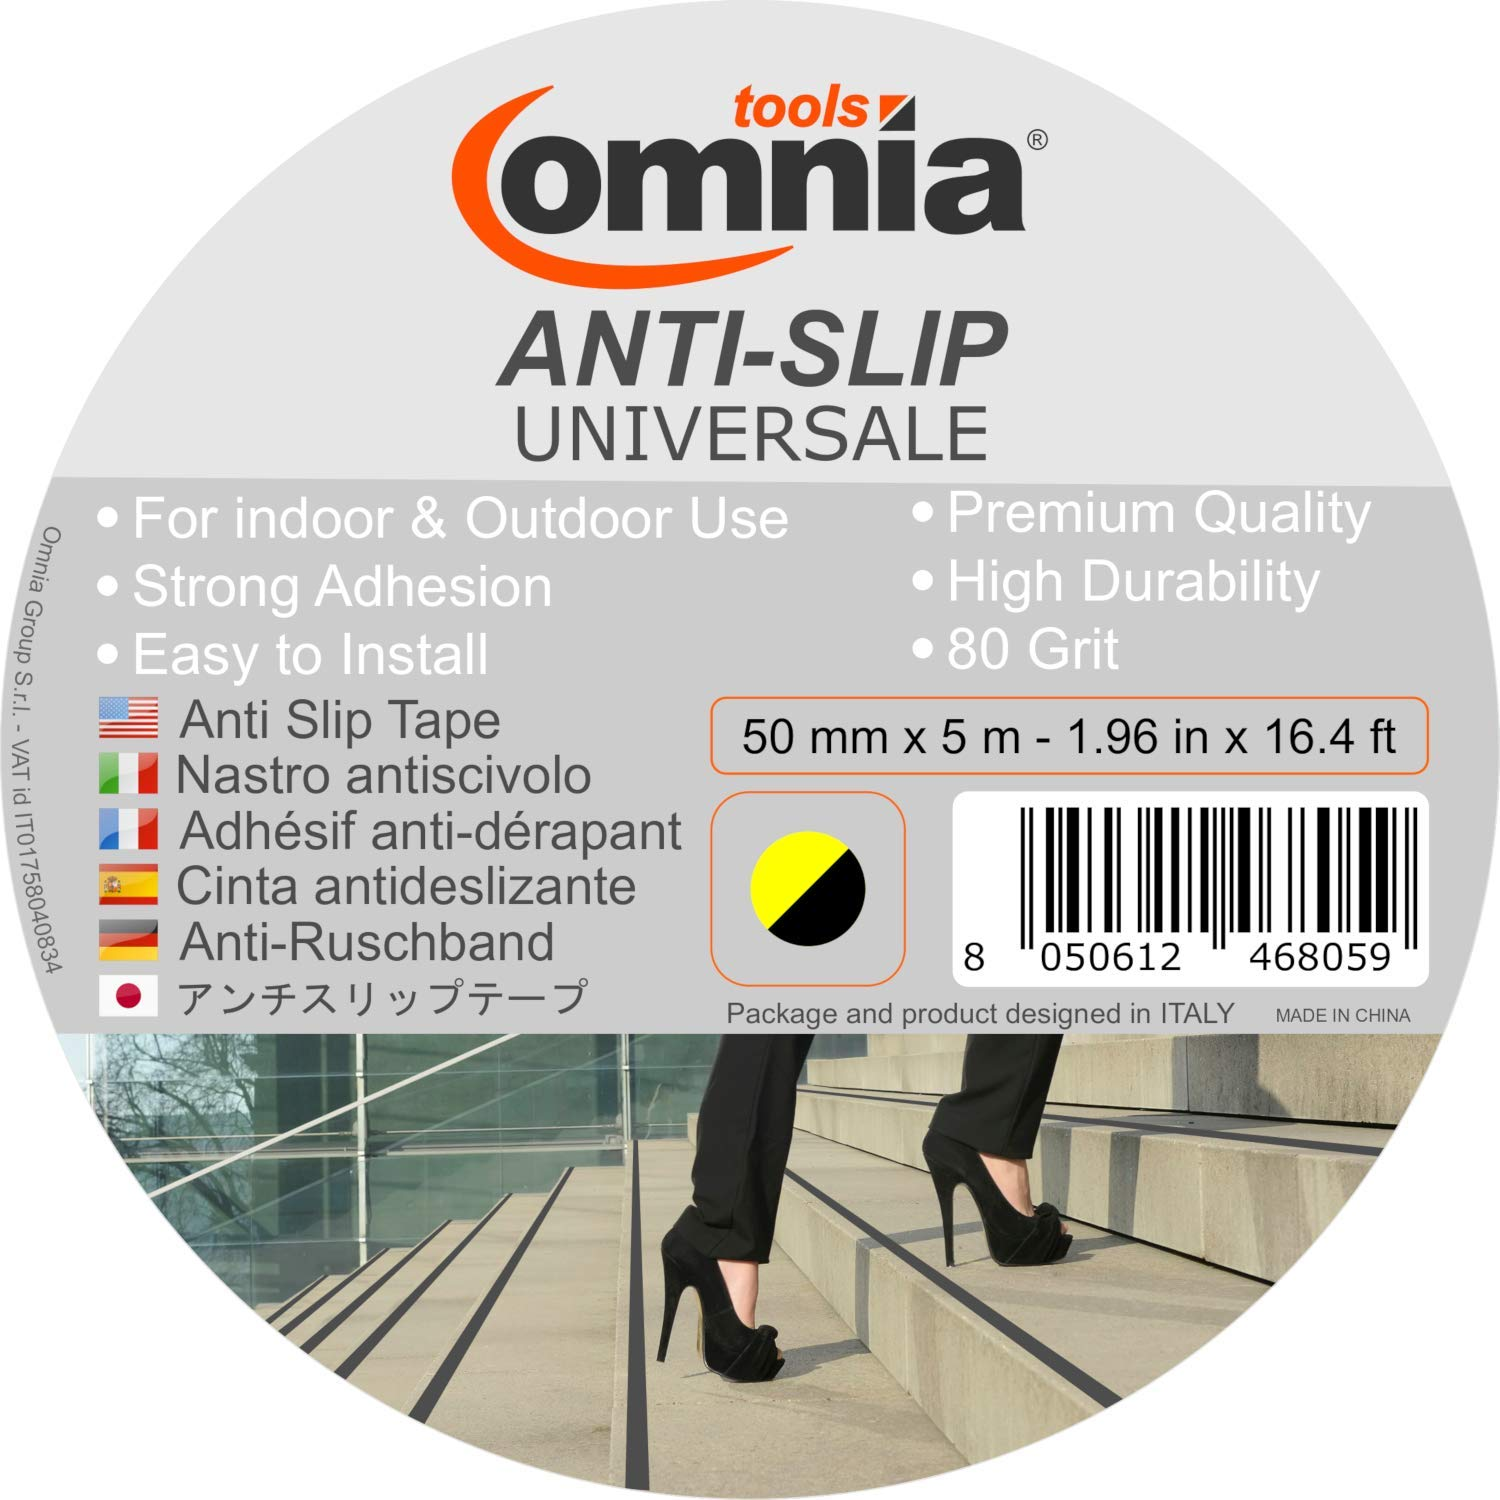 80 Grit White 29.5 mil 1.96 In x 16.4 Ft Self Adhesive Non Slip Safety Tape for Indoor /& Outdoor OMNIA TOOLS Universale Anti Slip Grip Tape